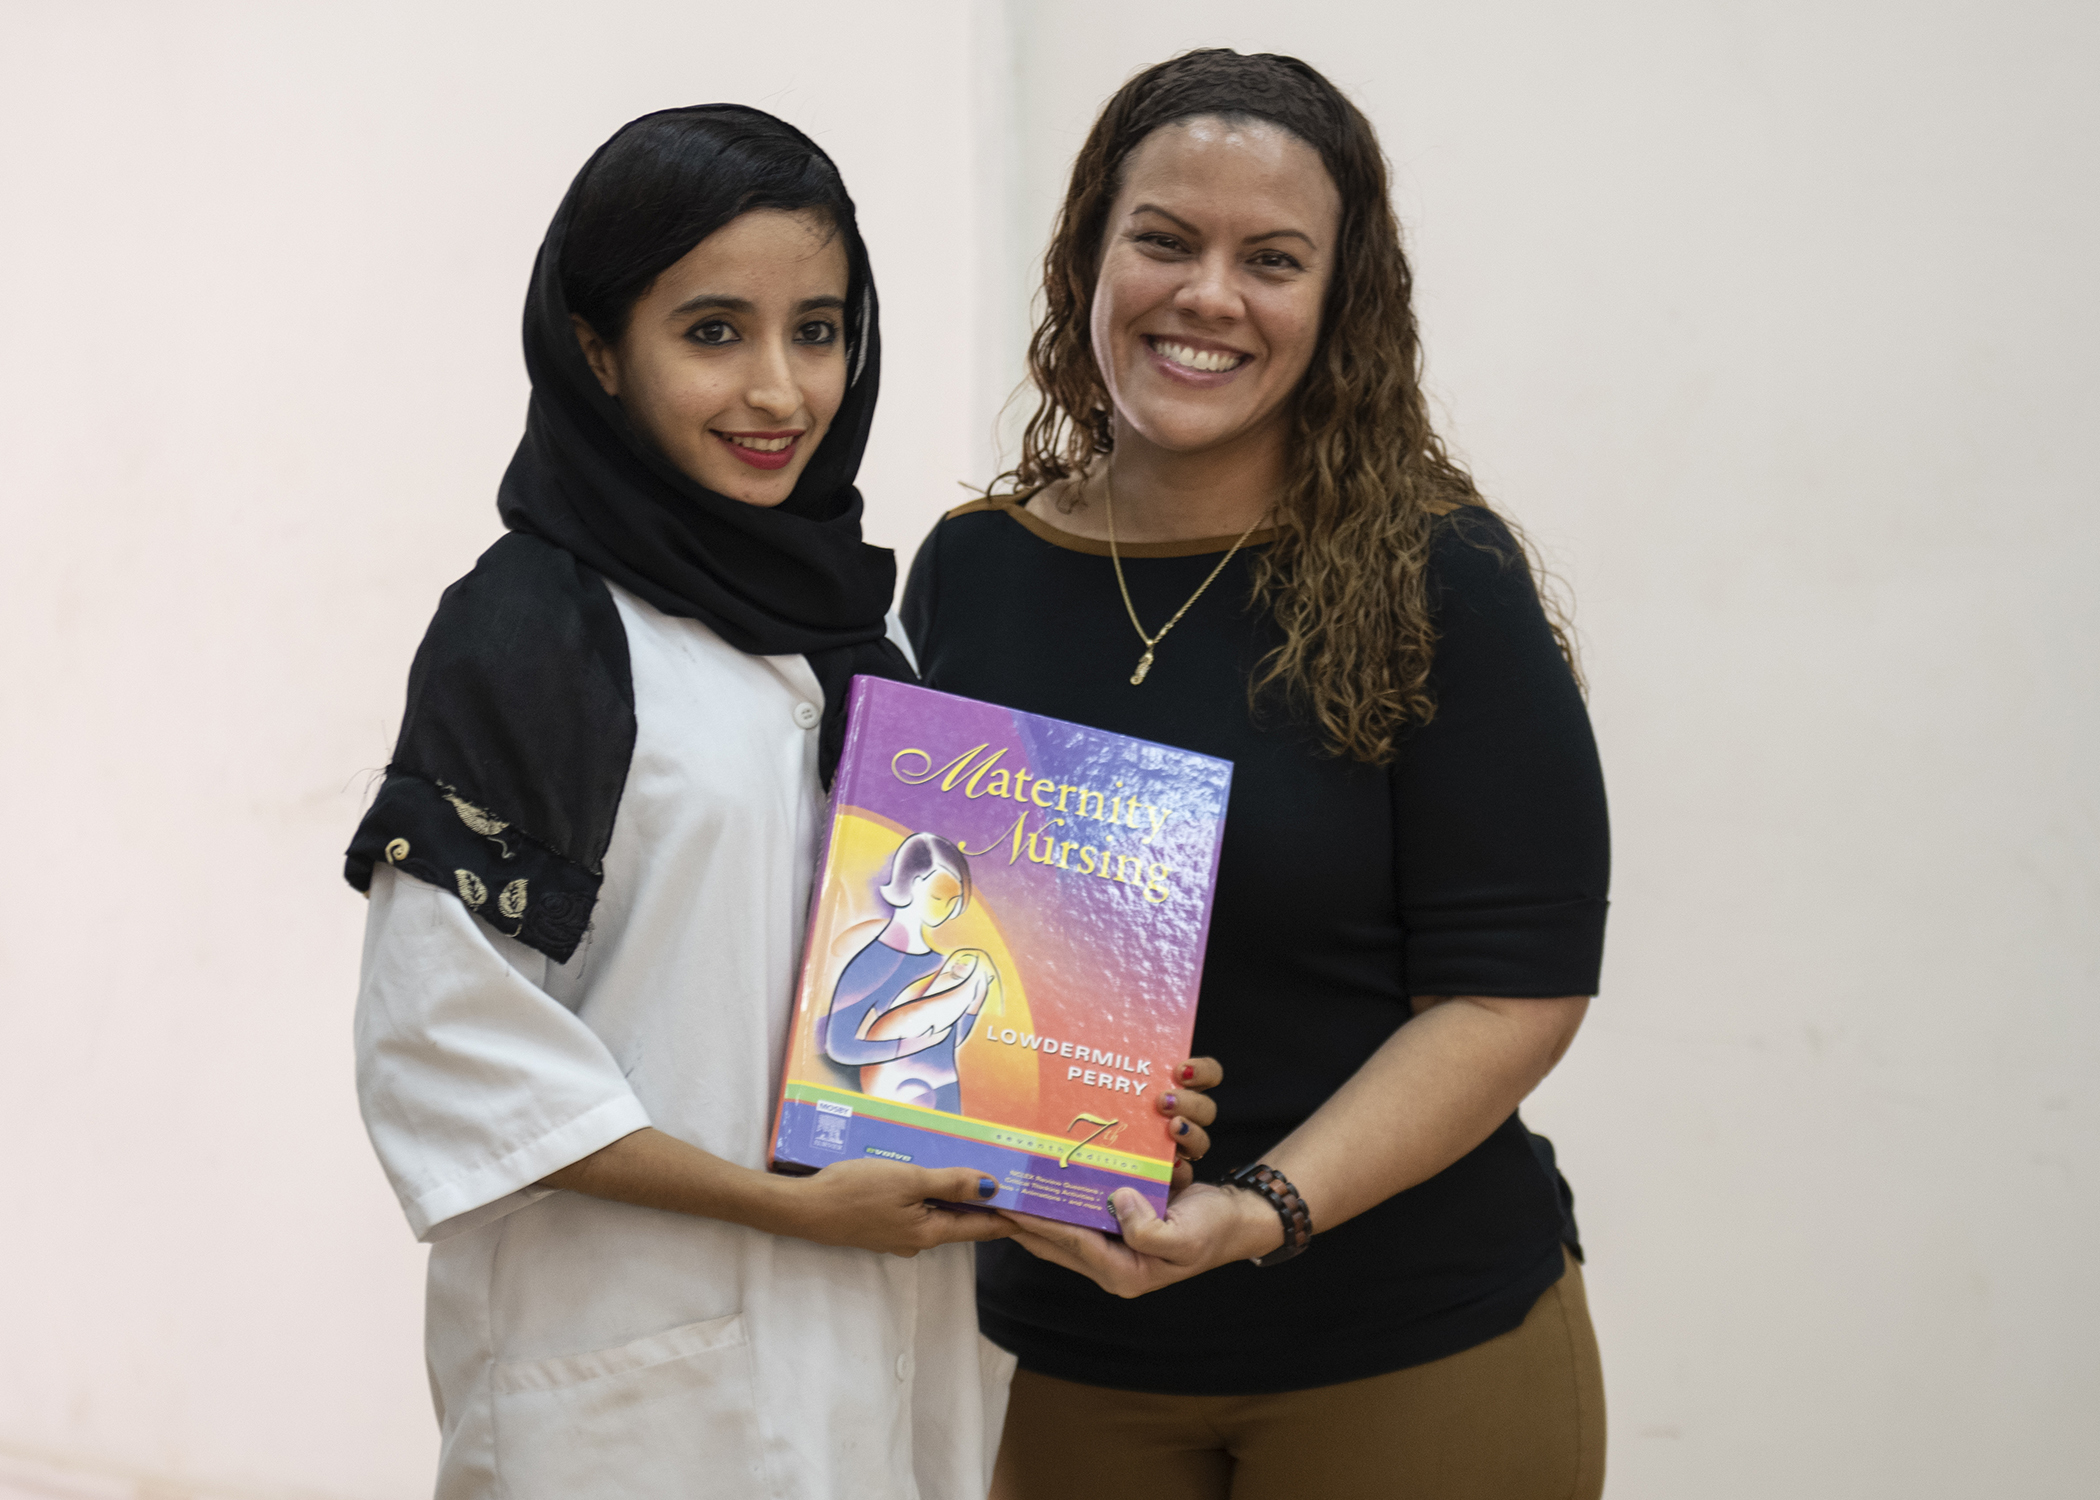 U.S. Army Maj. Ivette Blanco-Padilla, dental officer in charge, 403rd Civil Affairs Battalion (CAB), Combined Joint Task Force-Horn of Africa, Djibouti, gives a medical book to a student during a ceremony at the Djibouti Nursing School, Dec. 10, 2018. More than 30 students completed a semester-long medical English discussion group, facilitated by the 403rd CAB, which serves as a language laboratory where students develop practical linguistic and rhetorical skills through relationship building and information exchange. (U.S. Air Force photo by Tech. Sgt. Shawn Nickel)